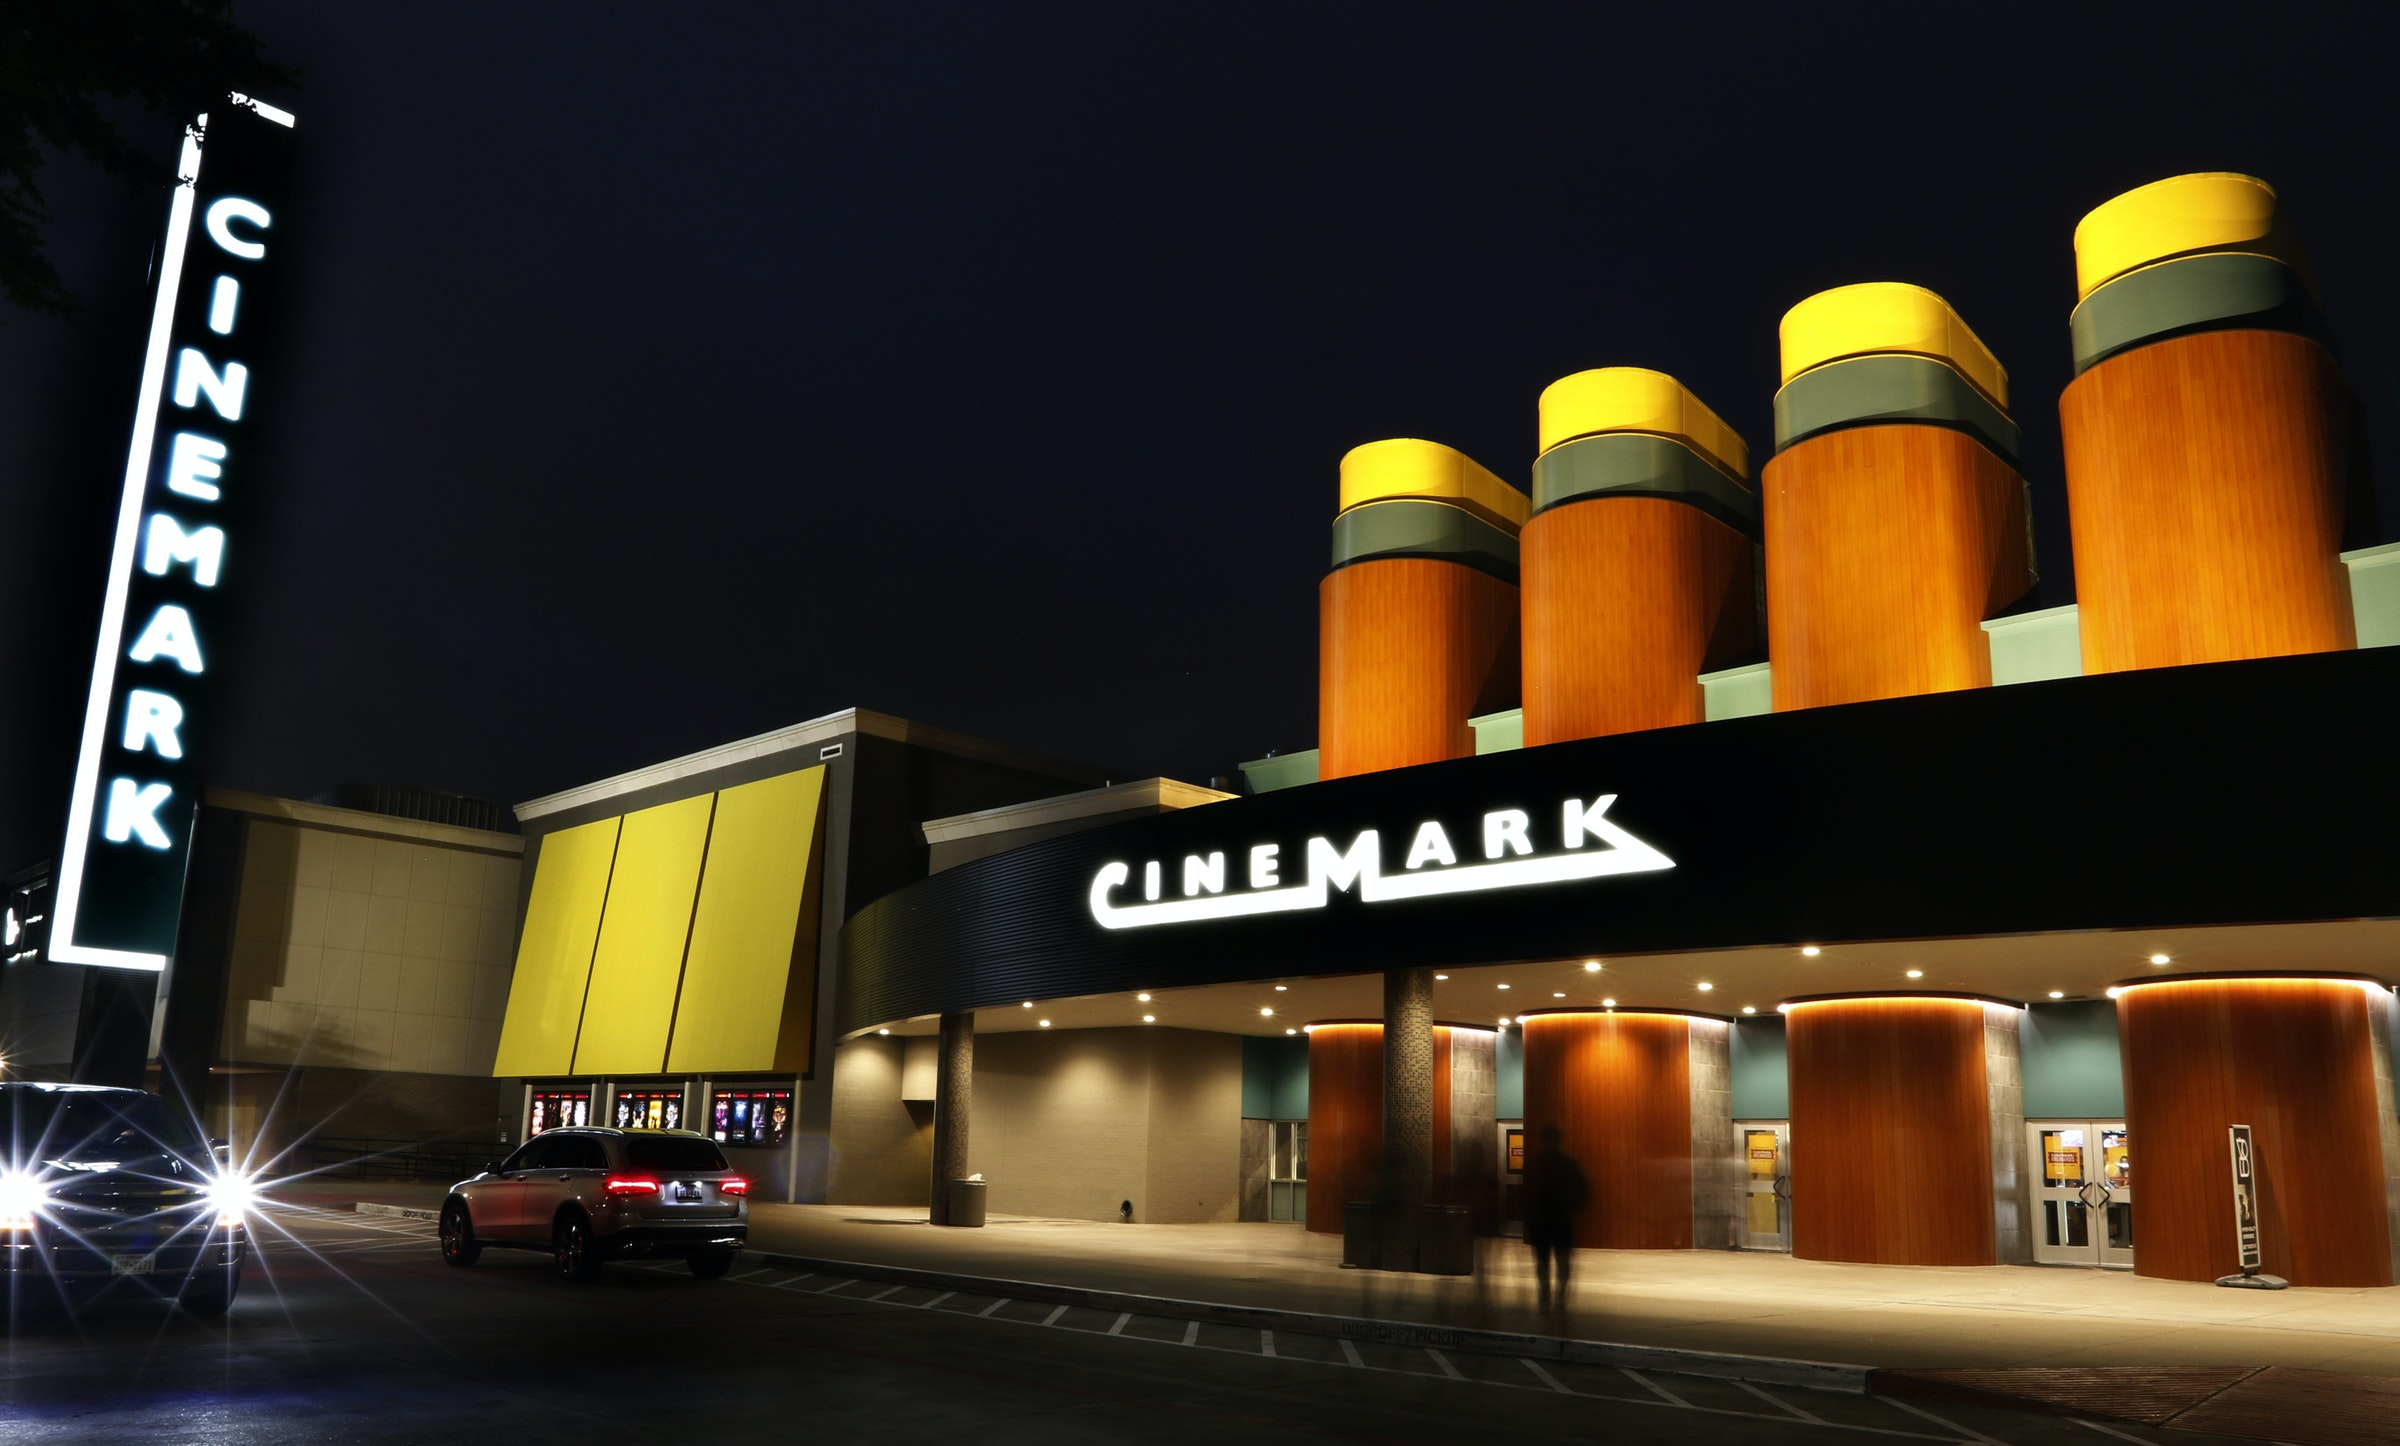 Cinemark - XD West Plano in Beyond Dallas